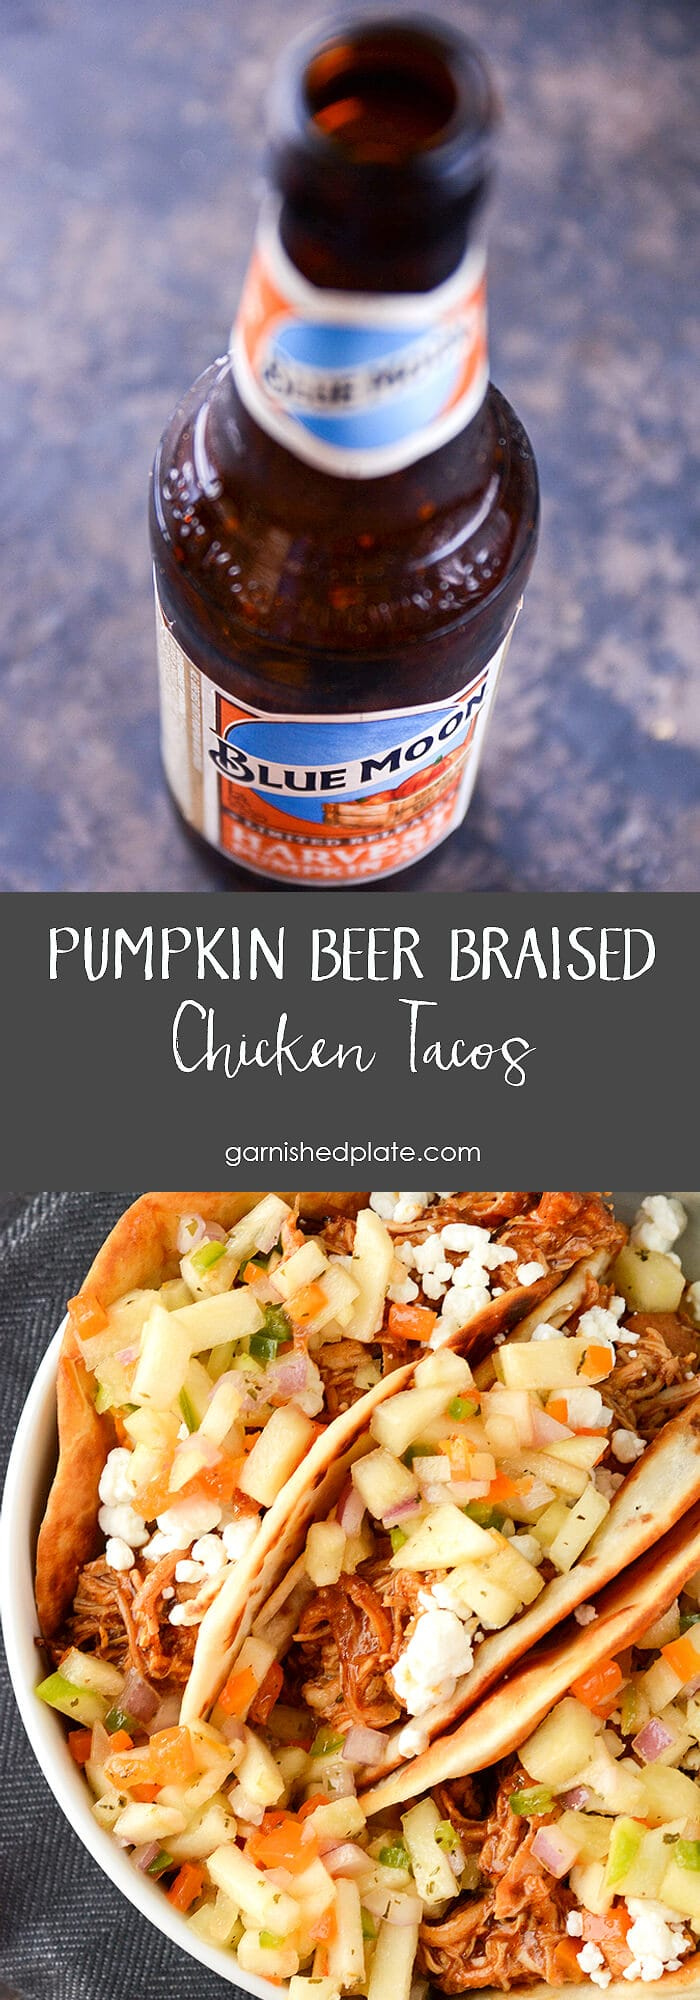 Pumpkin Beer Braised Chicken Tacos